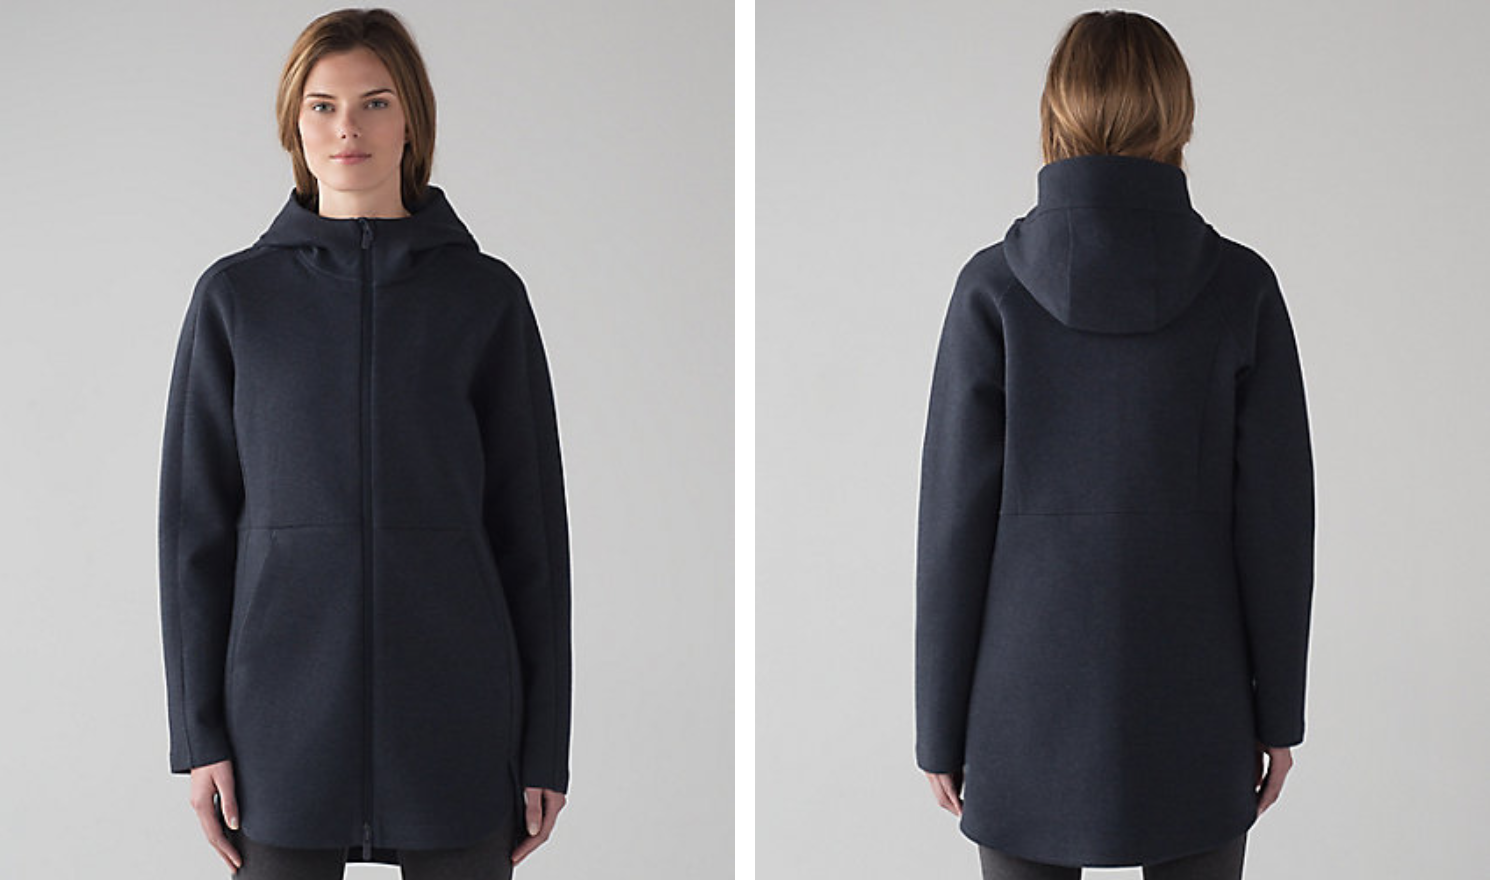 https://api.shopstyle.com/action/apiVisitRetailer?url=https%3A%2F%2Fshop.lululemon.com%2Fp%2Fwomens-outerwear%2FGoing-Places-Hooded-Jacket%2F_%2Fprod8351390%3Frcnt%3D12%26N%3D1z13ziiZ7z5%26cnt%3D38%26color%3DLW4AEAS_8641&site=www.shopstyle.ca&pid=uid6784-25288972-7